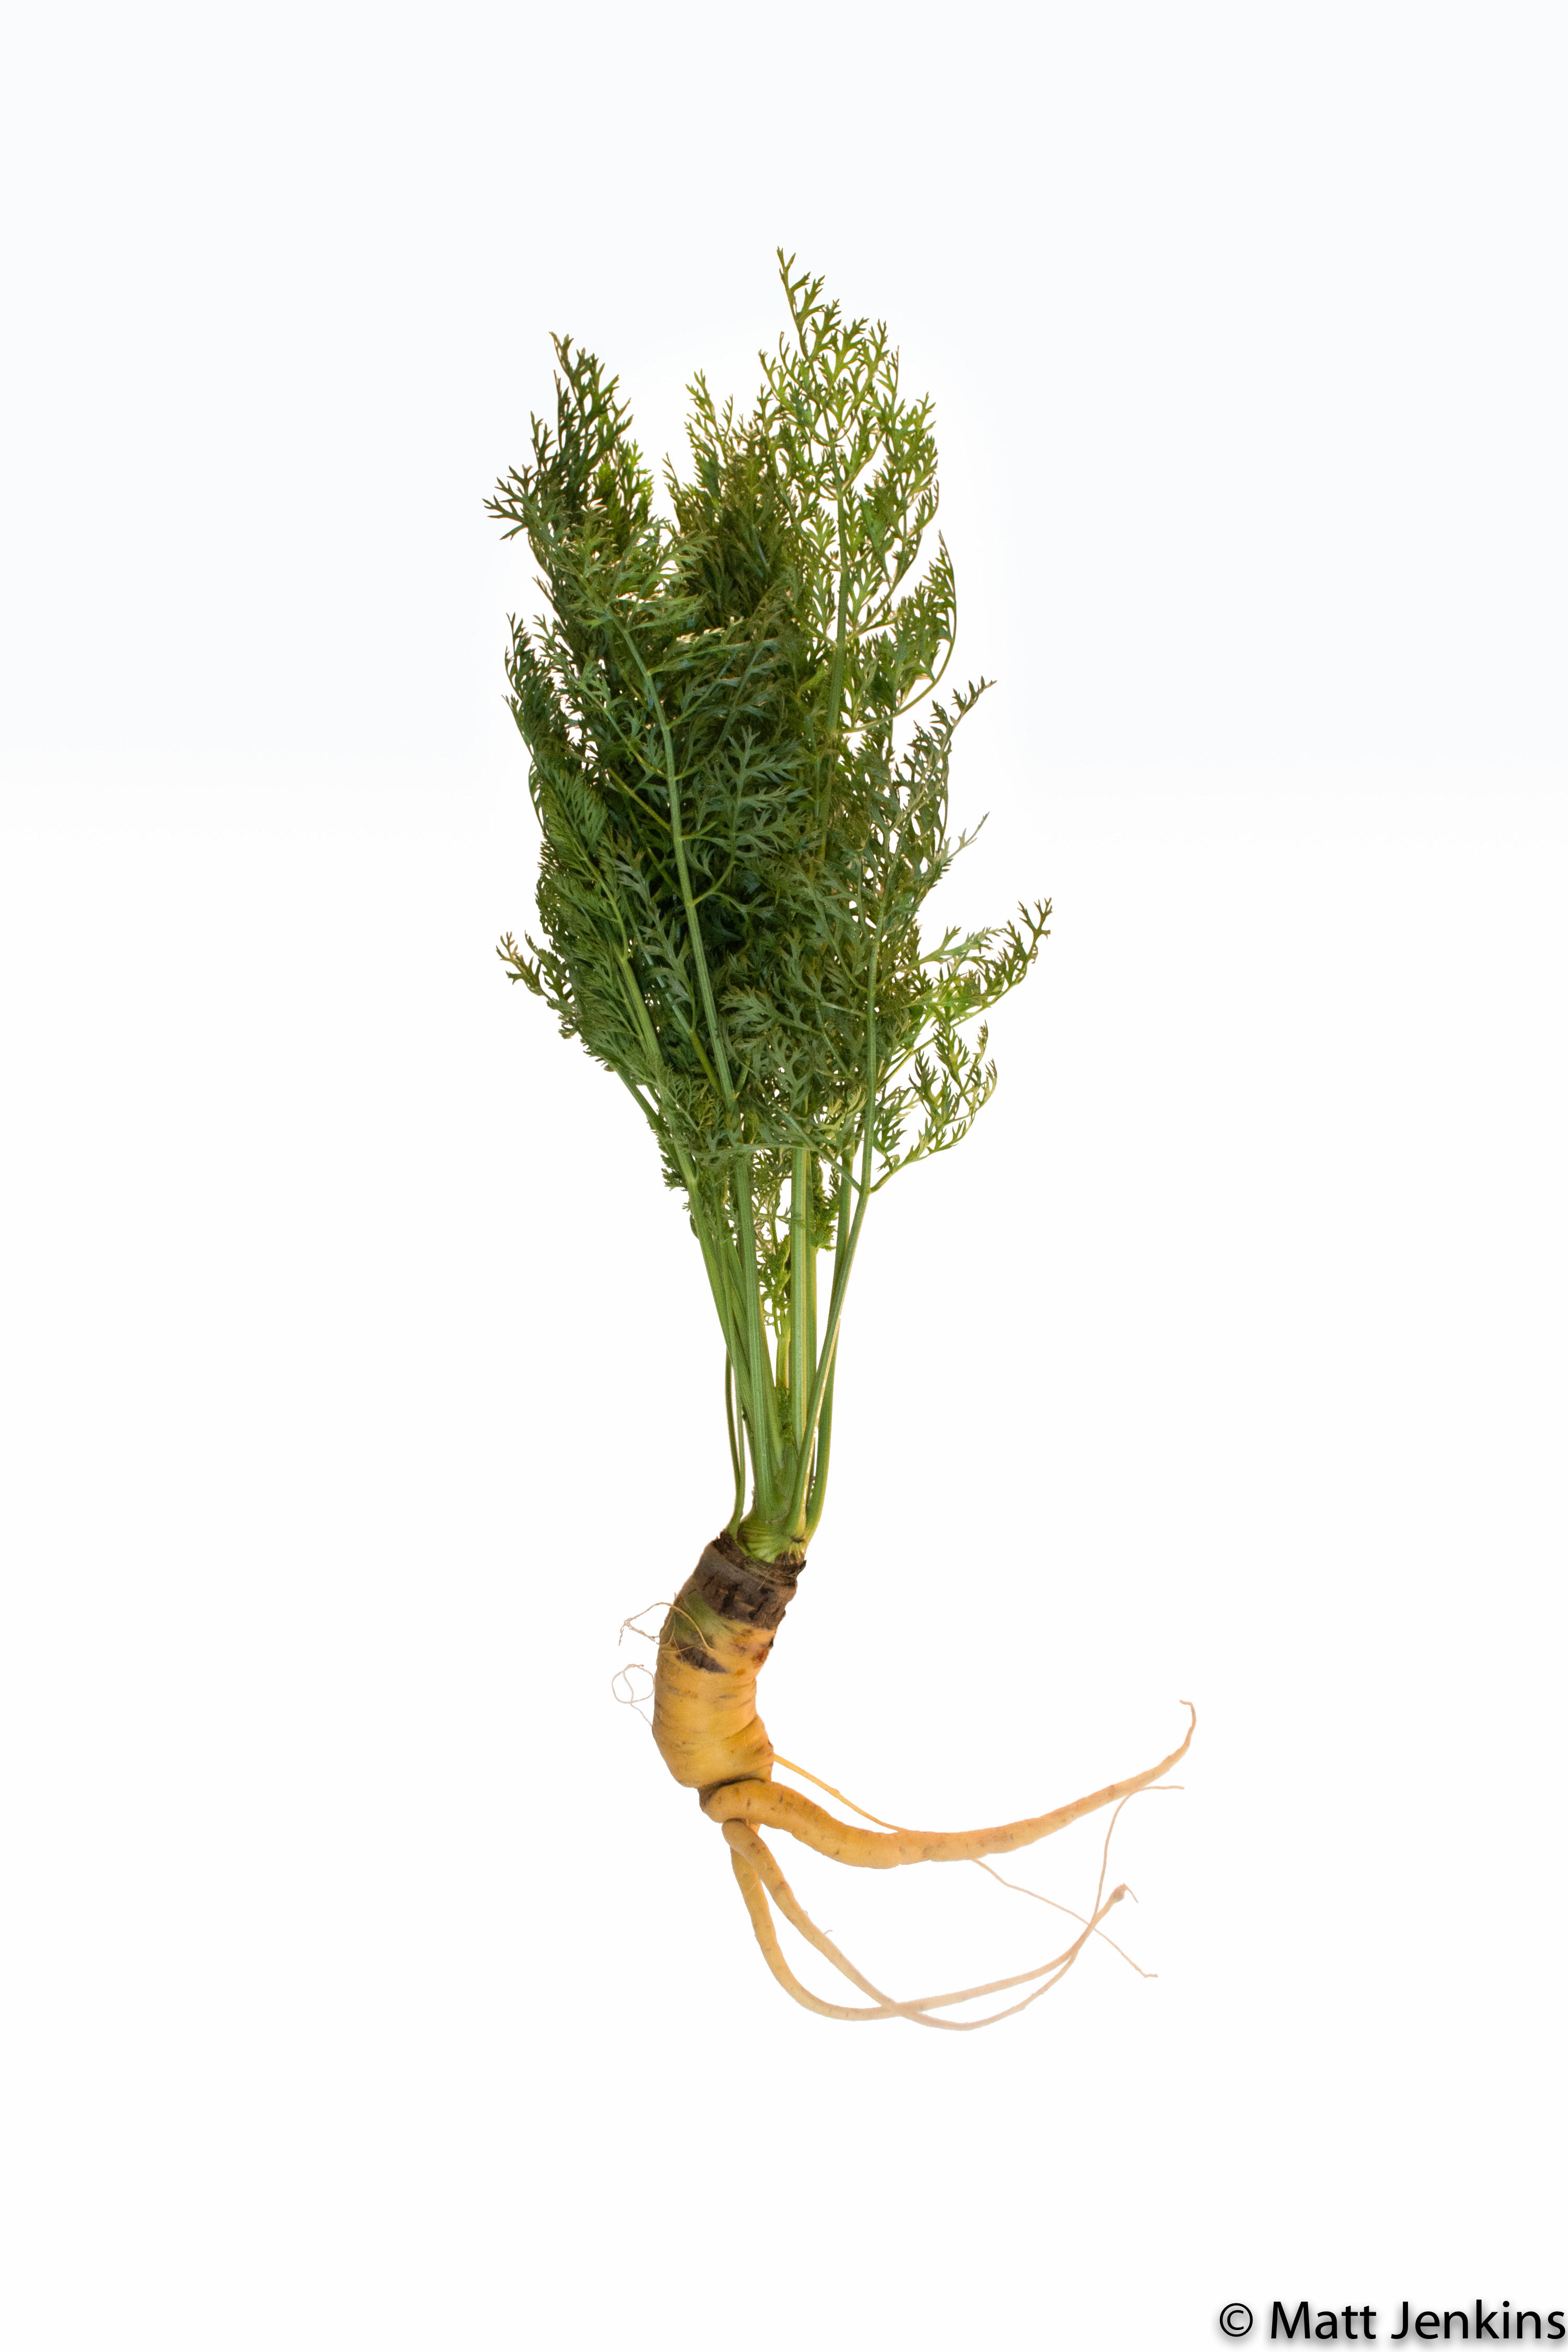 A aesthetically flawed carrot on white background.